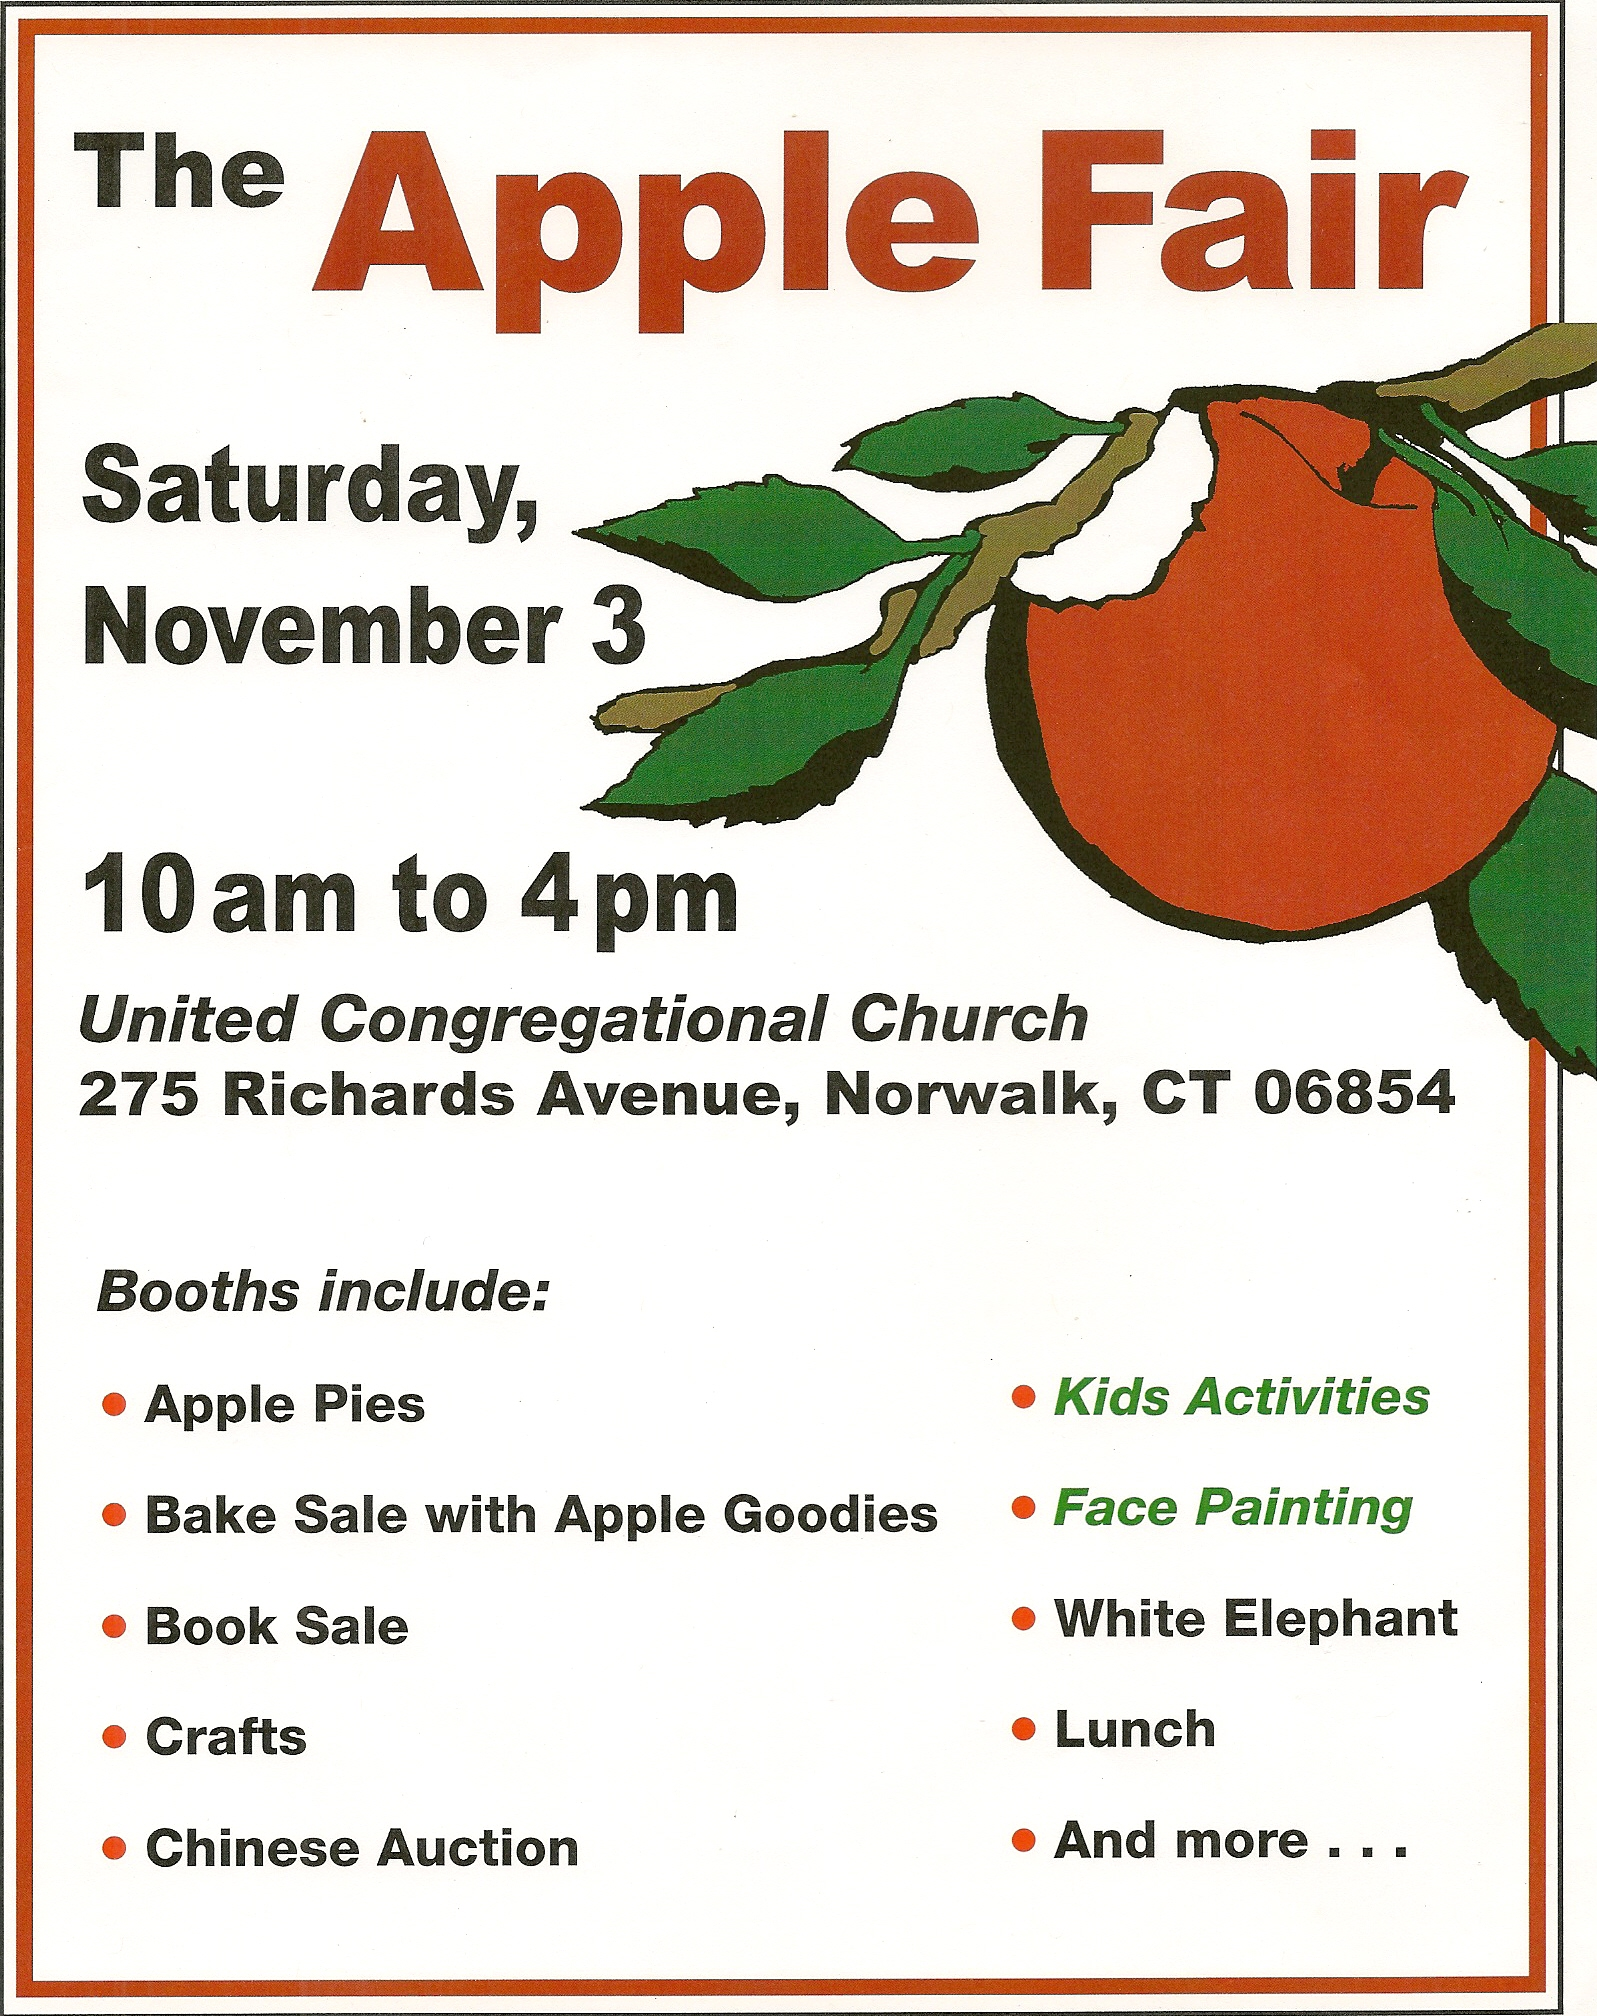 AppleFair2018